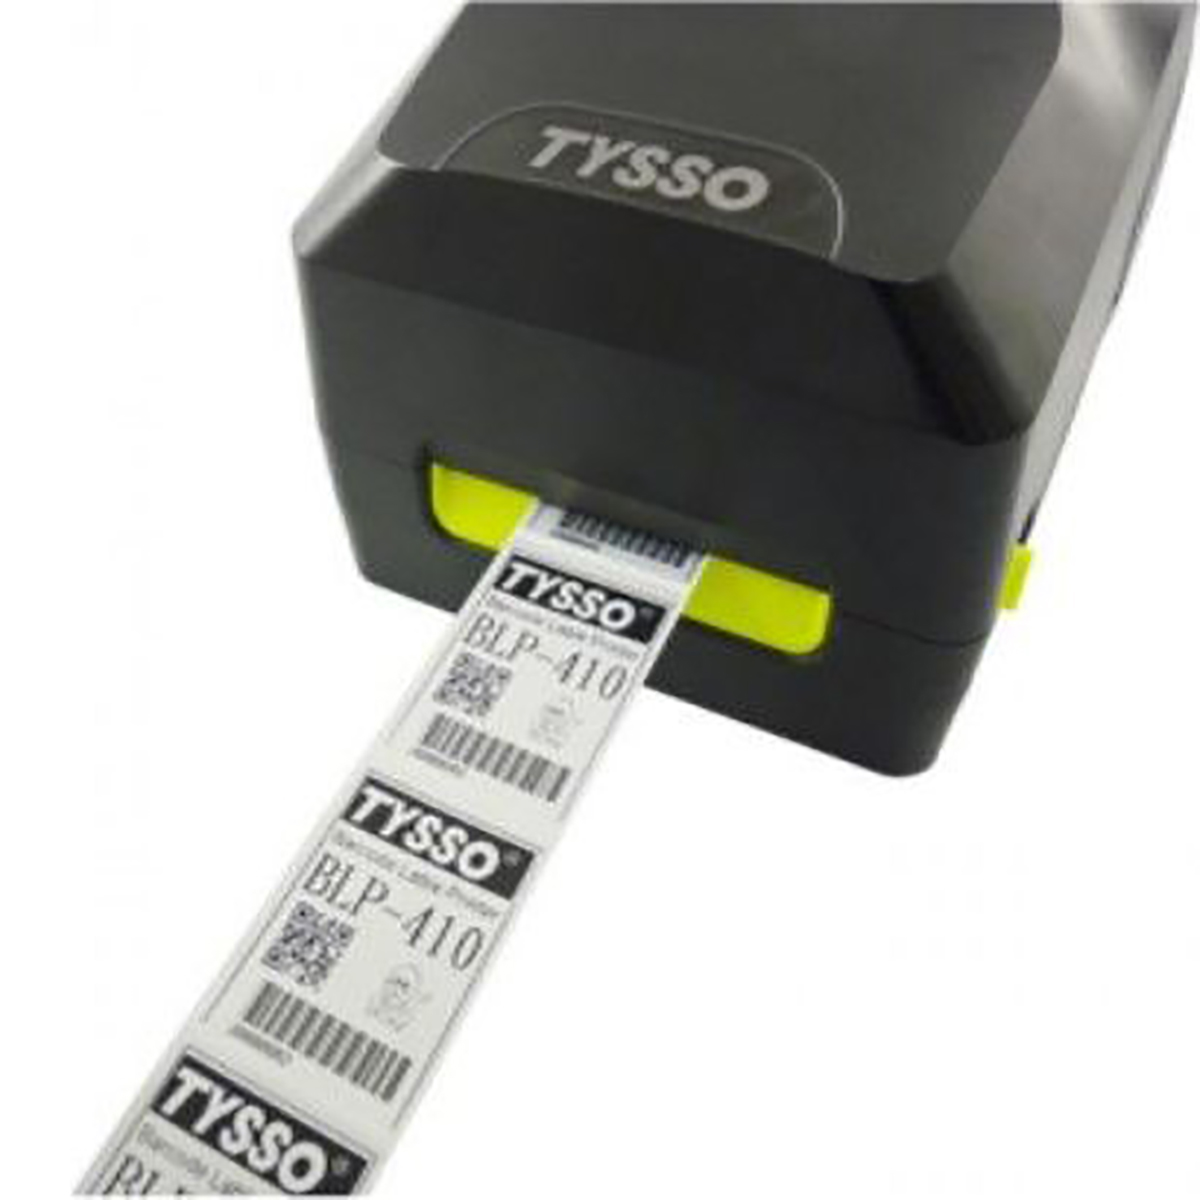 TYSSO (Exclusive) BLP-410 4 Inch Thermal Transfer/Thermal Direct